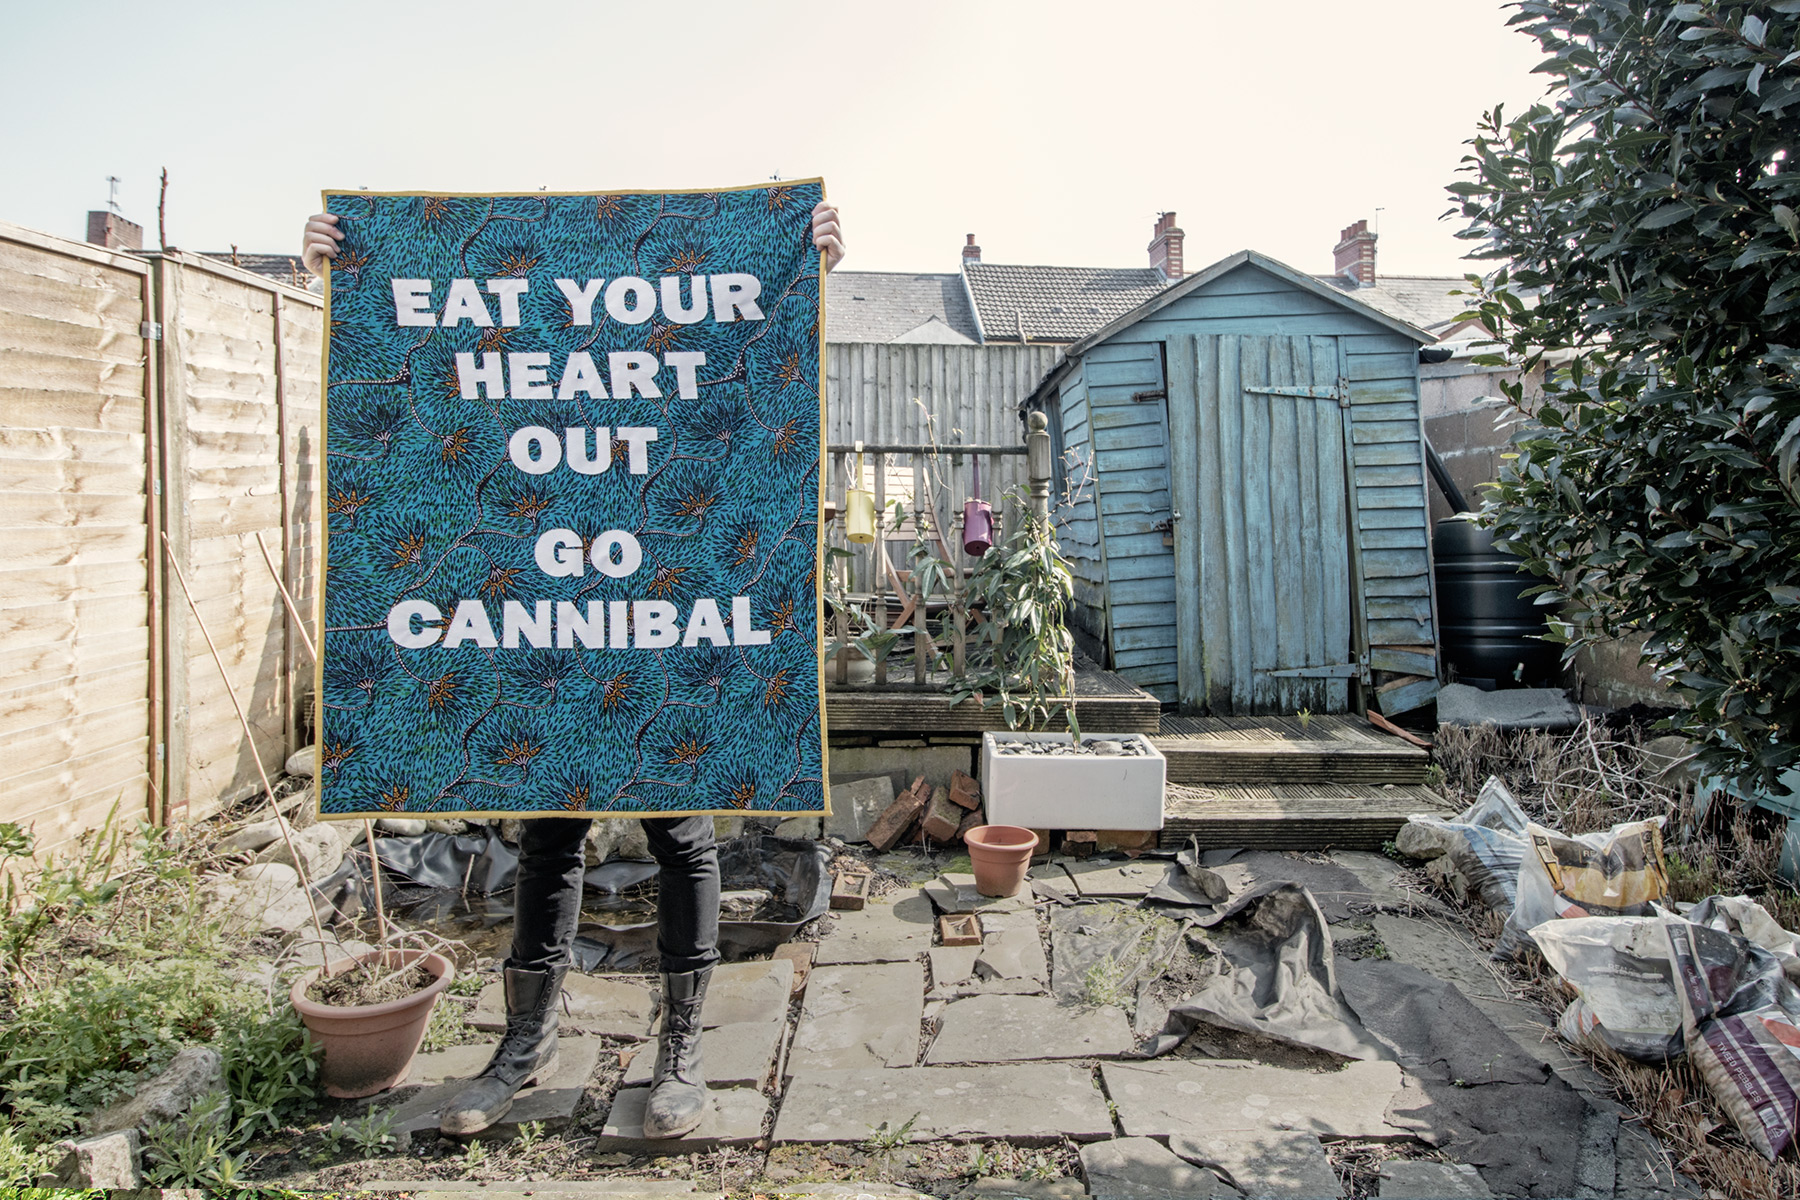 Eat Your Heart Out! Go Cannibal!